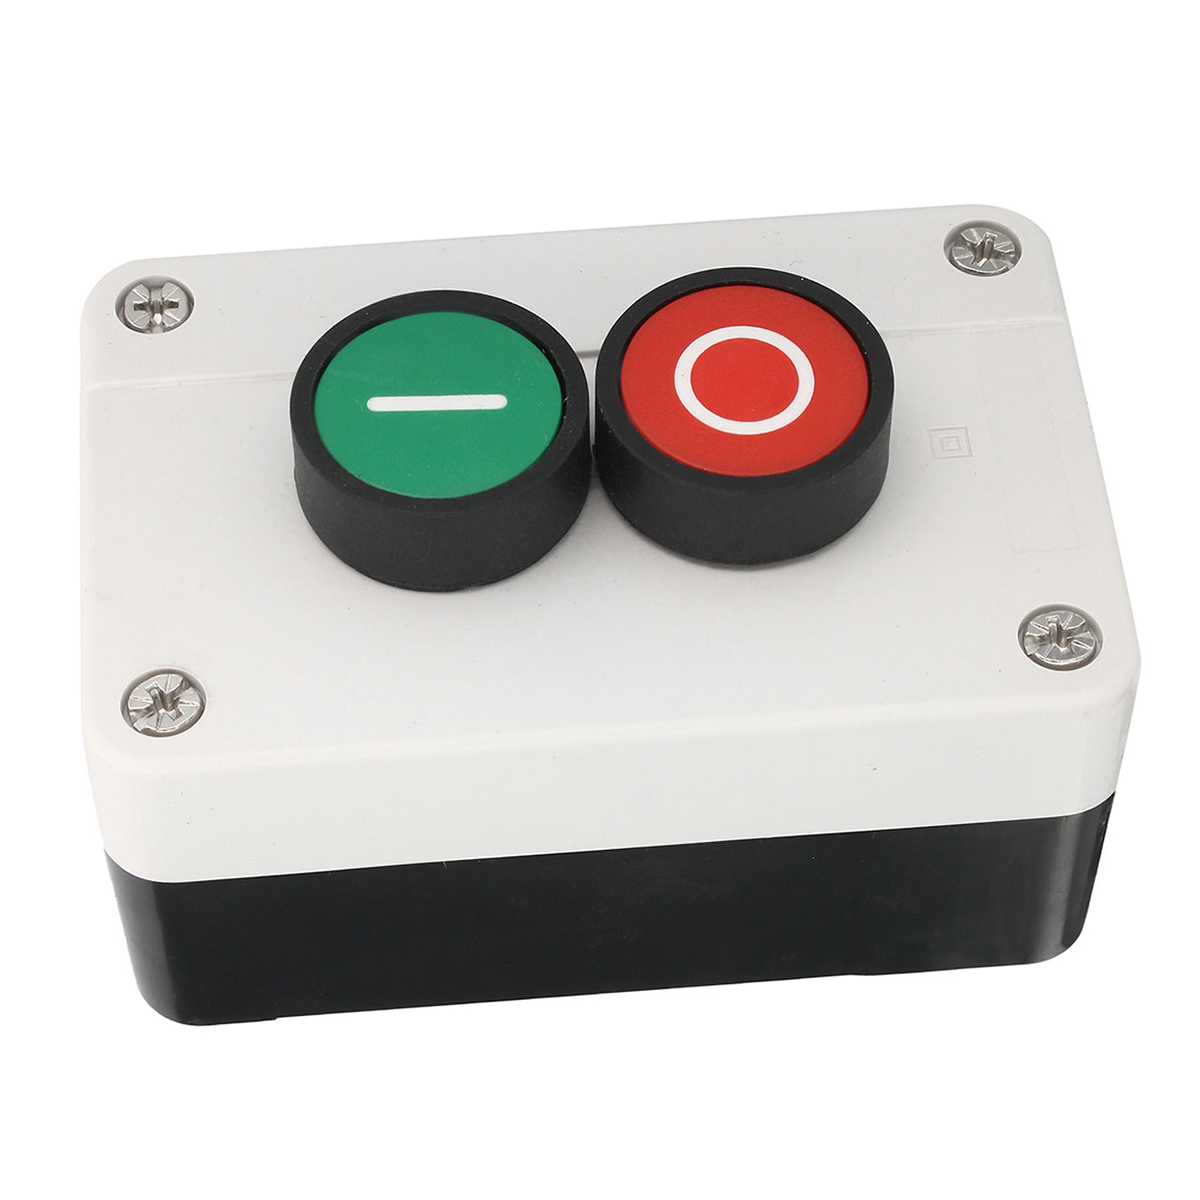 1pc Push Button Station Switch Plastic Enclosures Remote Start Stop Motor Solenoid IP55 Button Box Momentary Switch Mayitr on off start stop push button pushbutton switch 87x56mm with dust cover